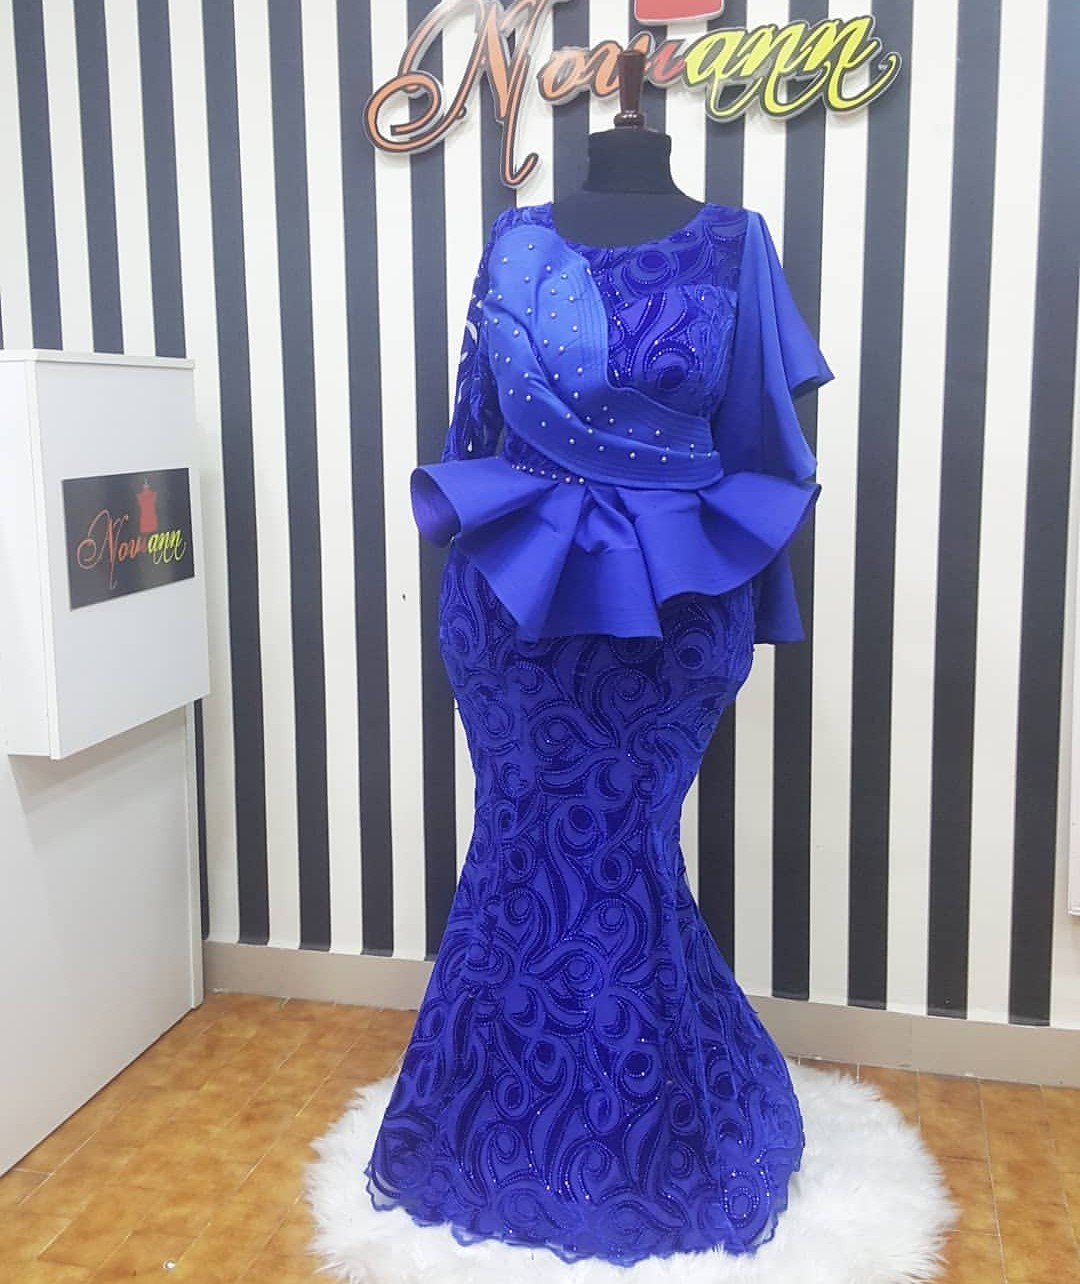 2019 LACE ASO EBI & SKIRTS TO EMPHASIZE YOUR BODY BEAUTY! 3